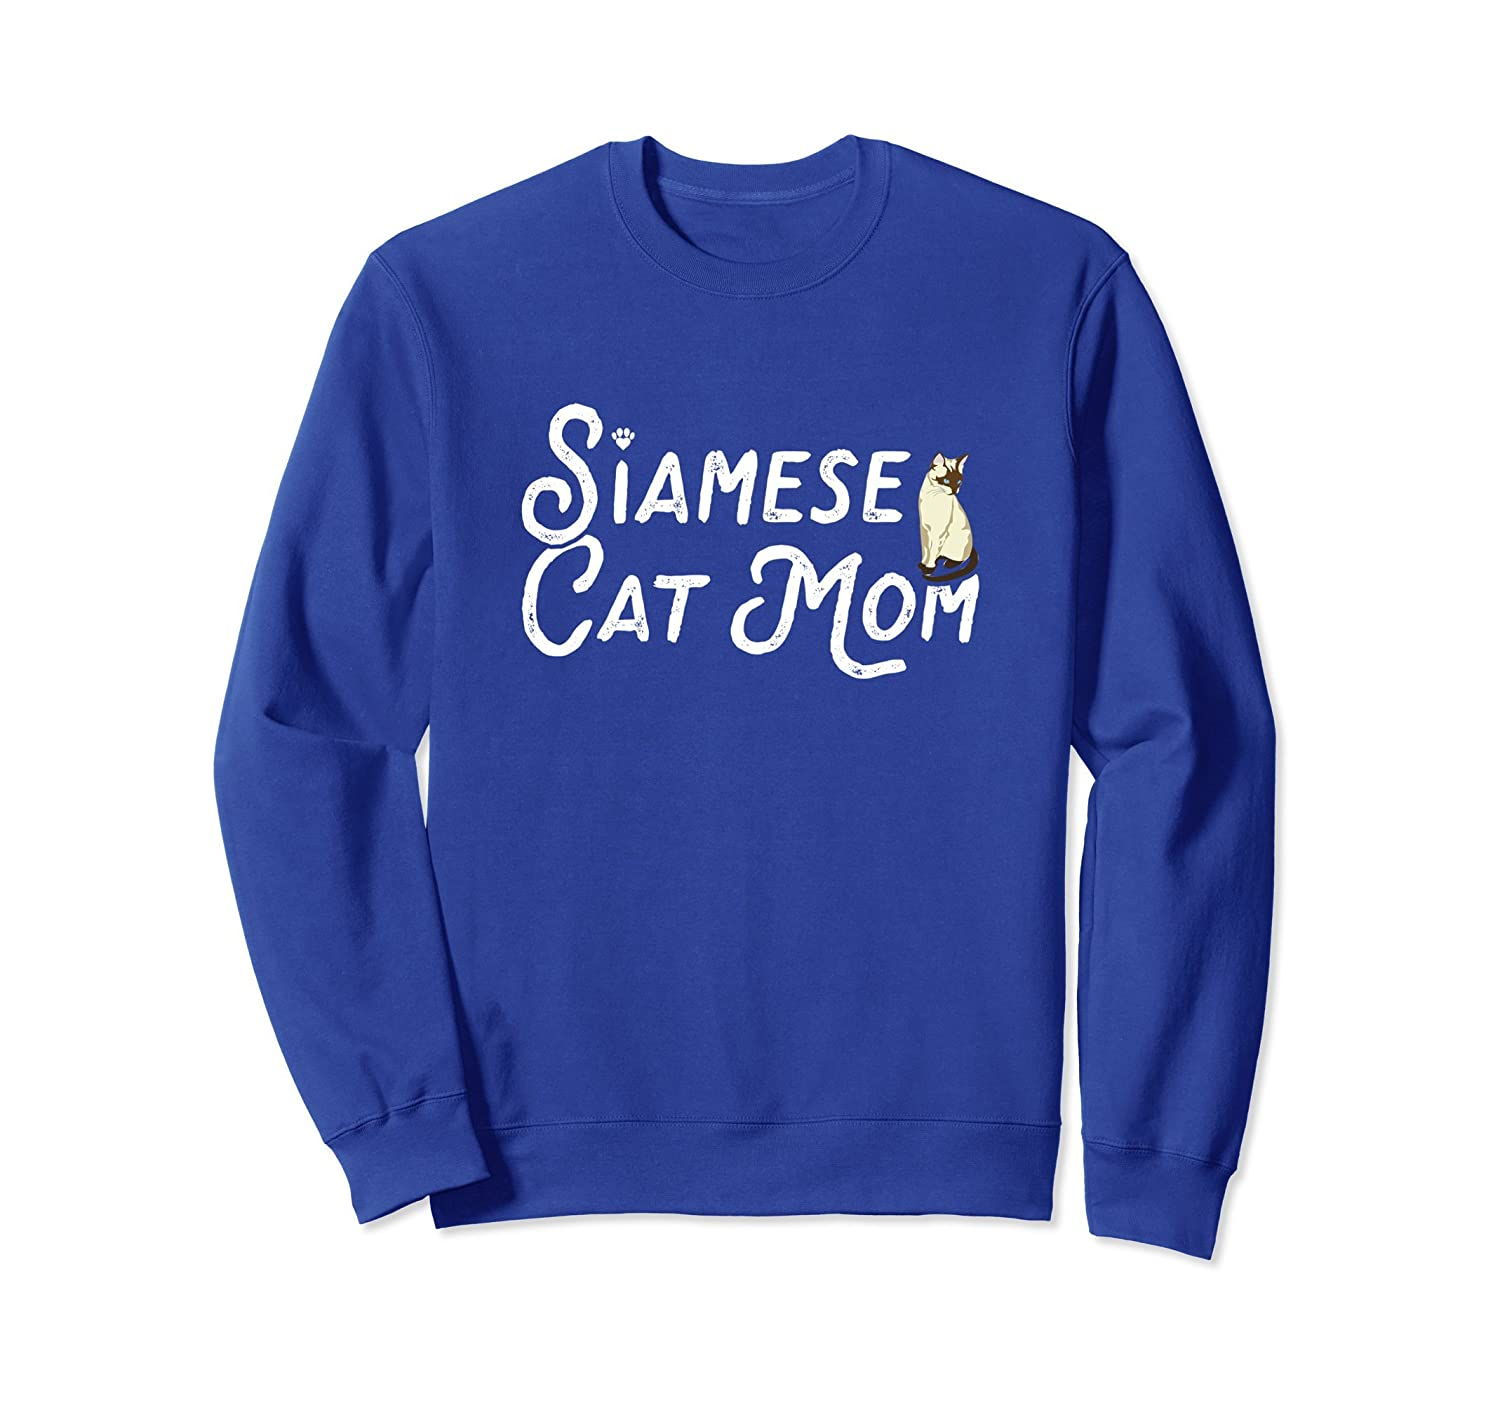 Women Sweatshirt for Cat Moms and Siamese Cat lovers-alottee gift